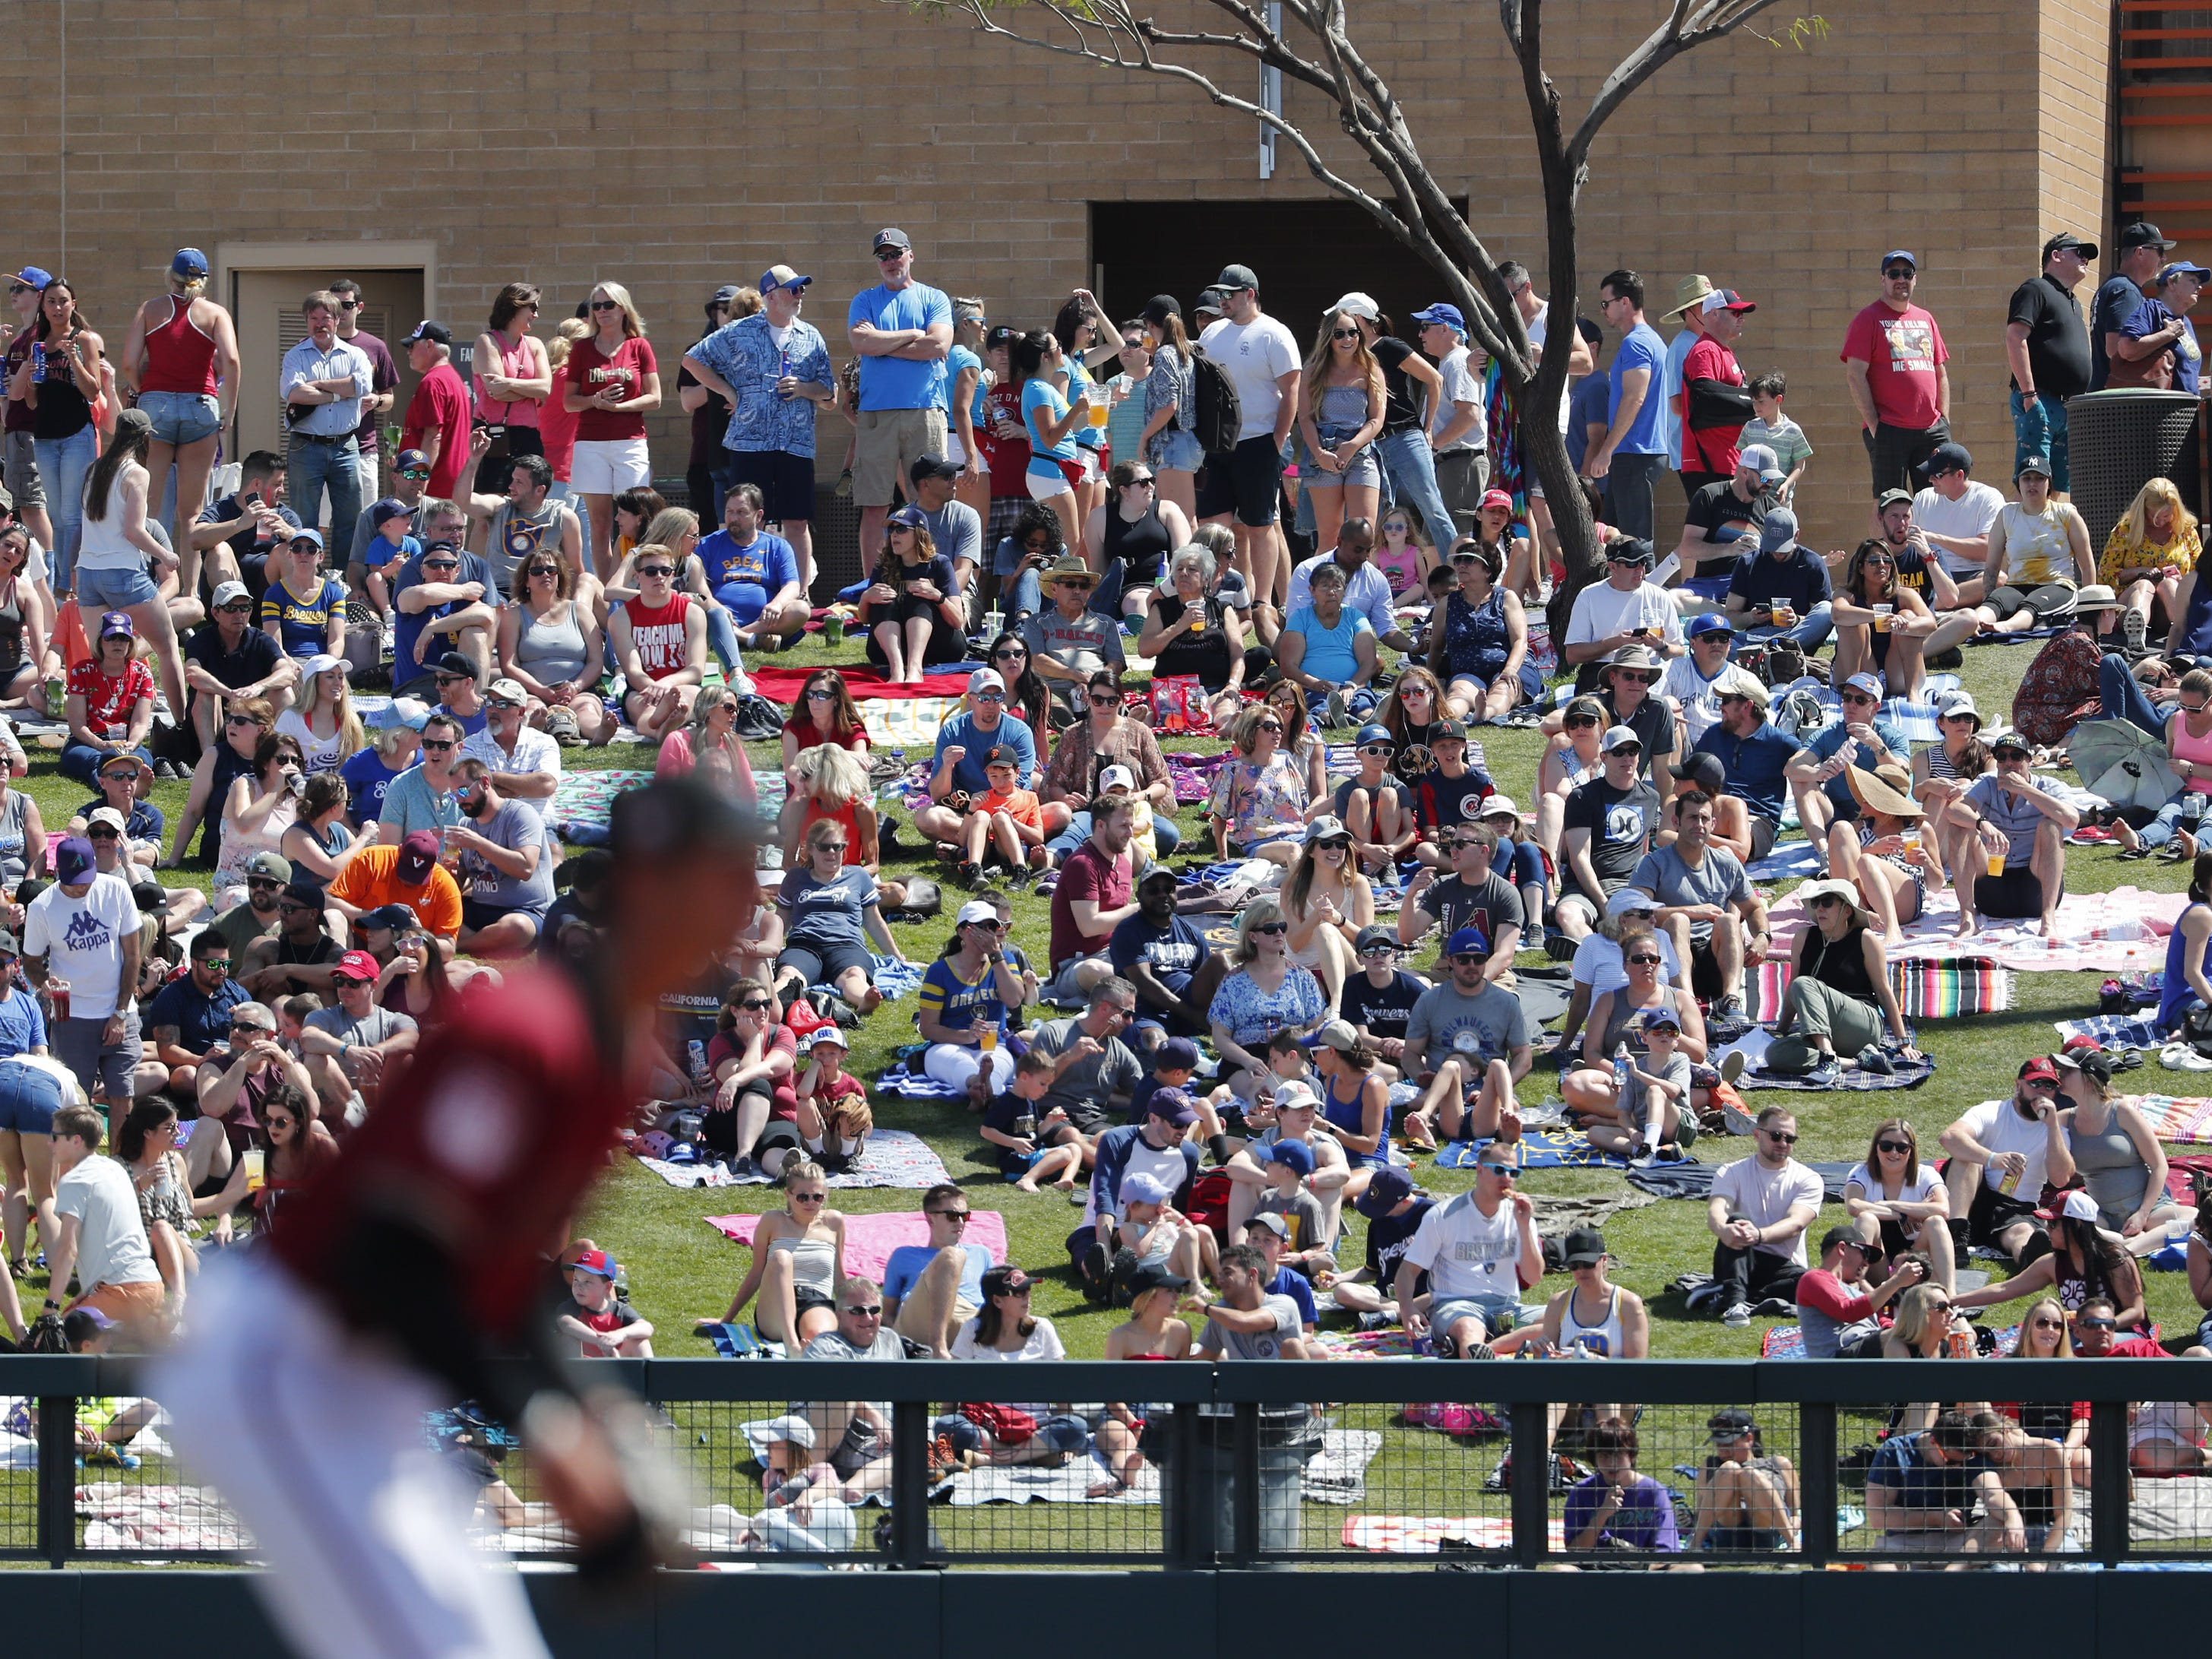 Fans soak up the sun during spring training action between the Arizona Diamondbacks and the Milwaukee Brewers at Salt River Fields at Talking Stick March 24, 2019.